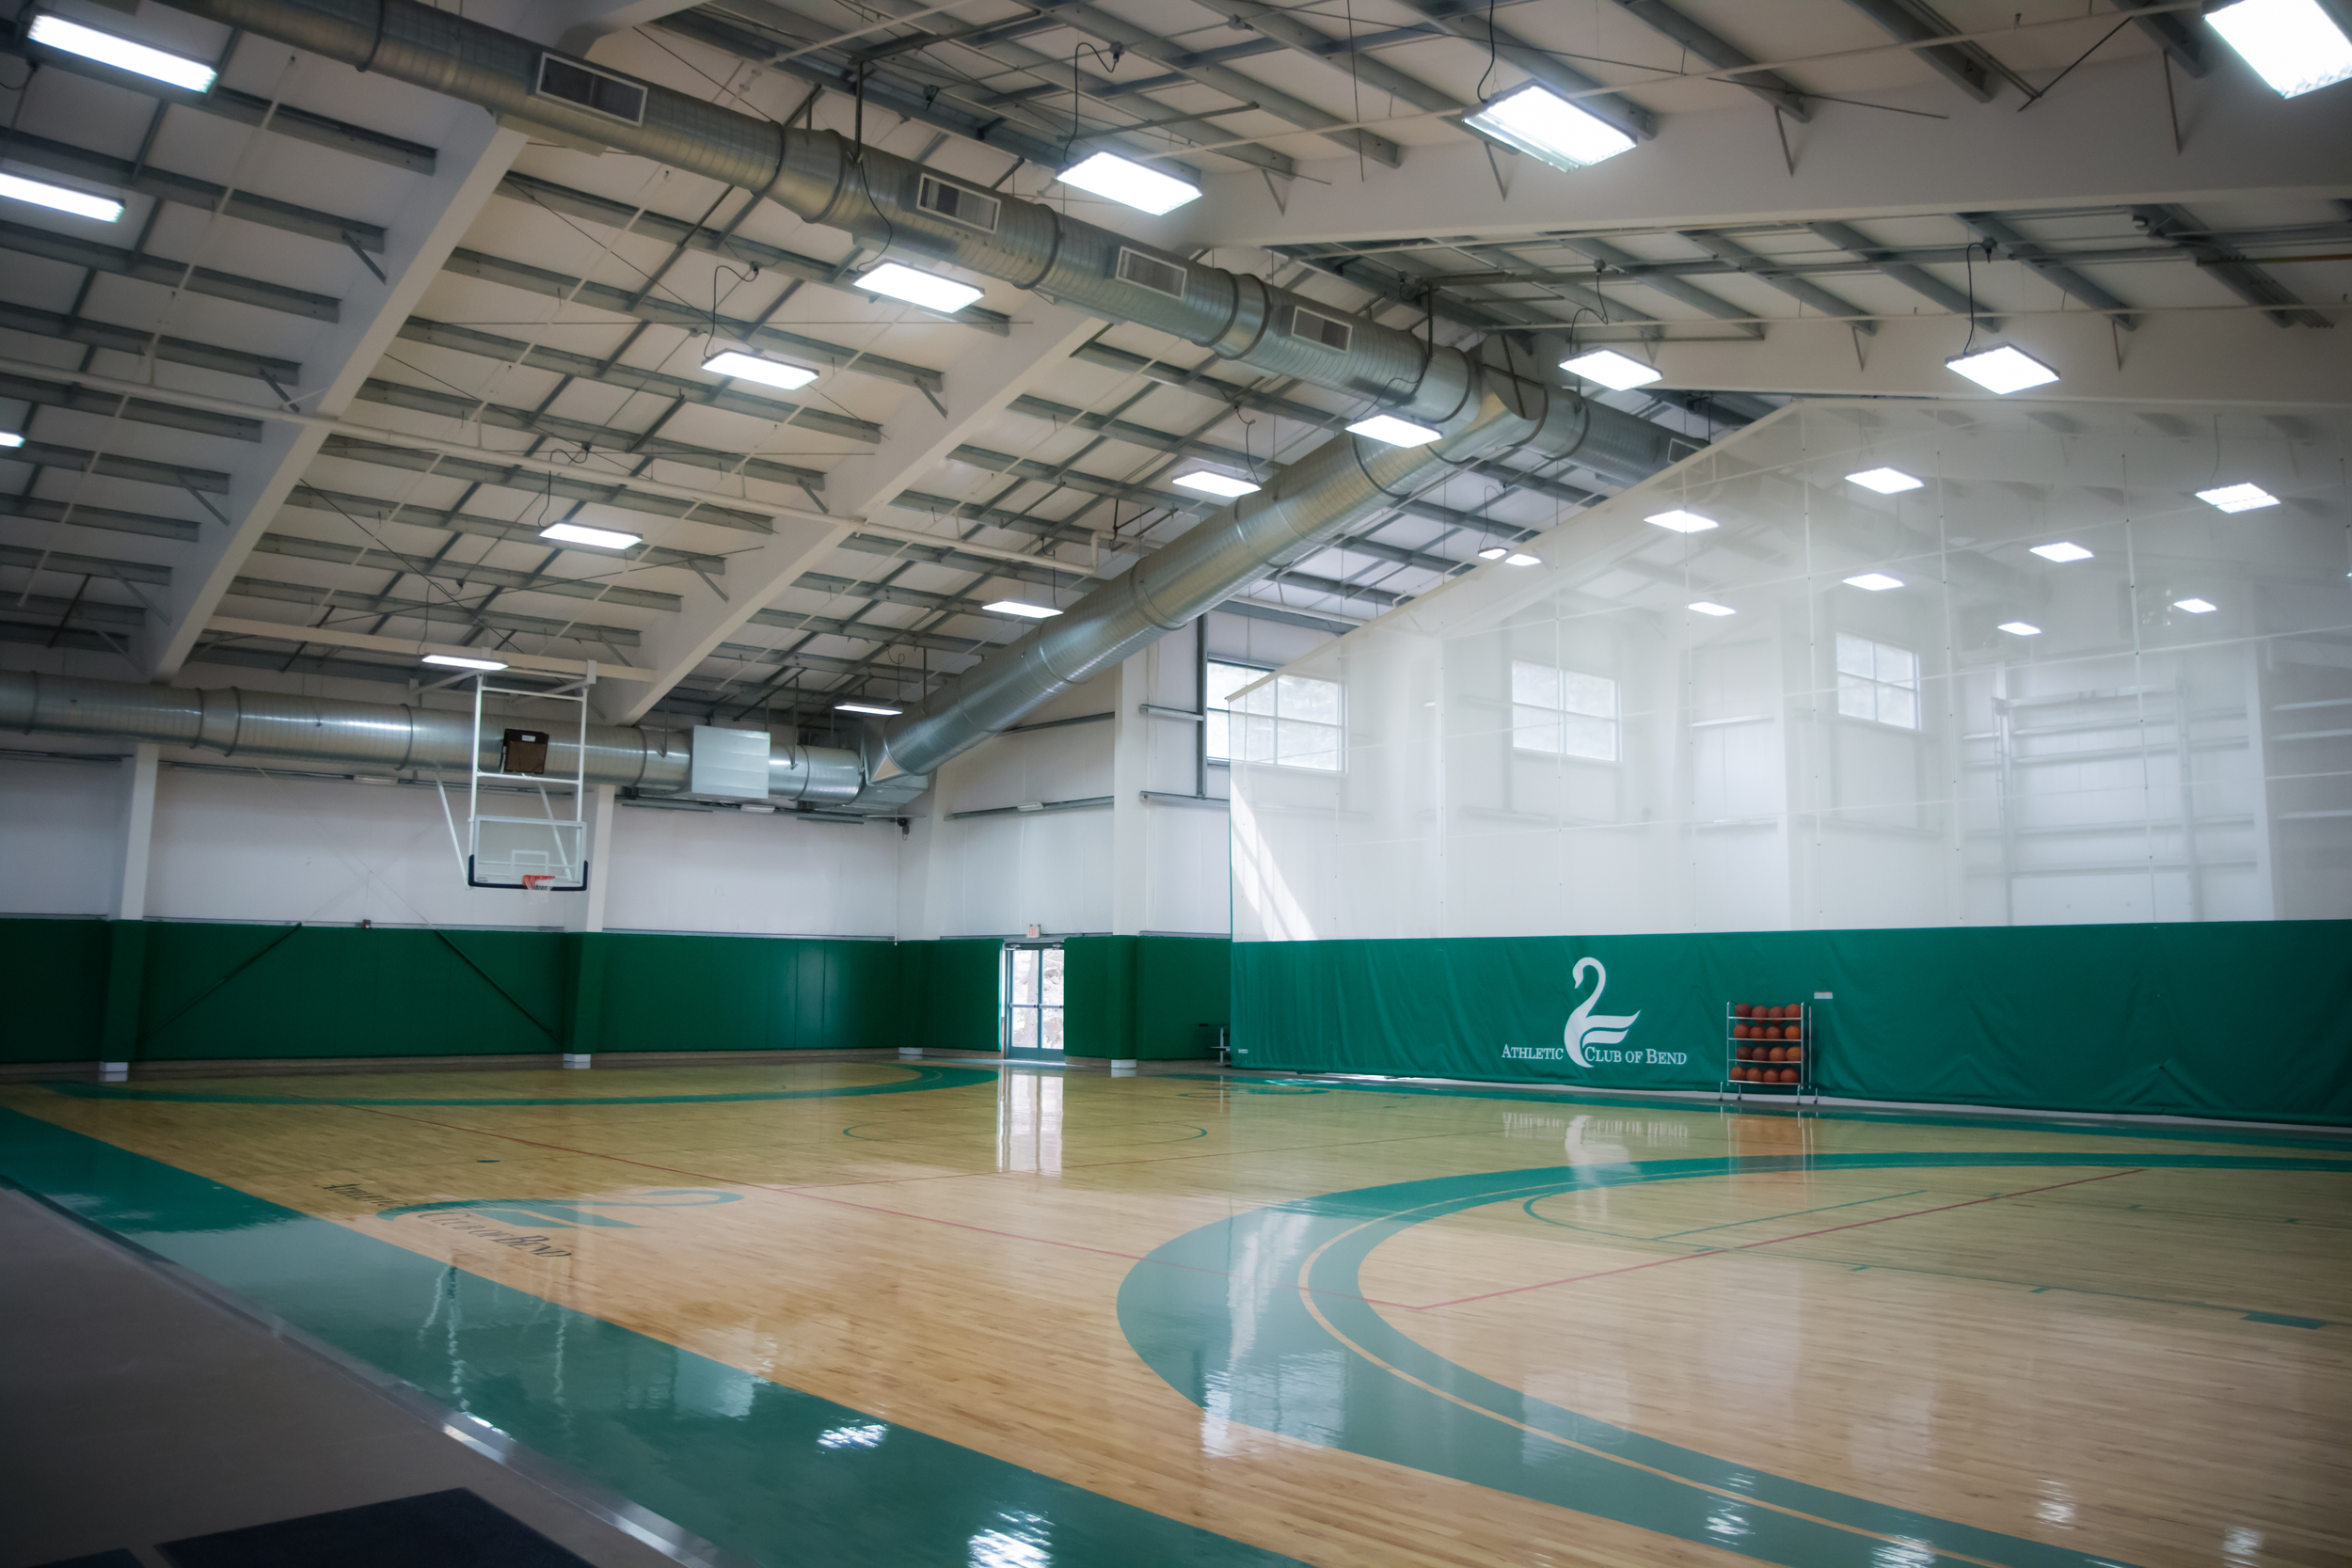 Two Full Size Gymnasiums